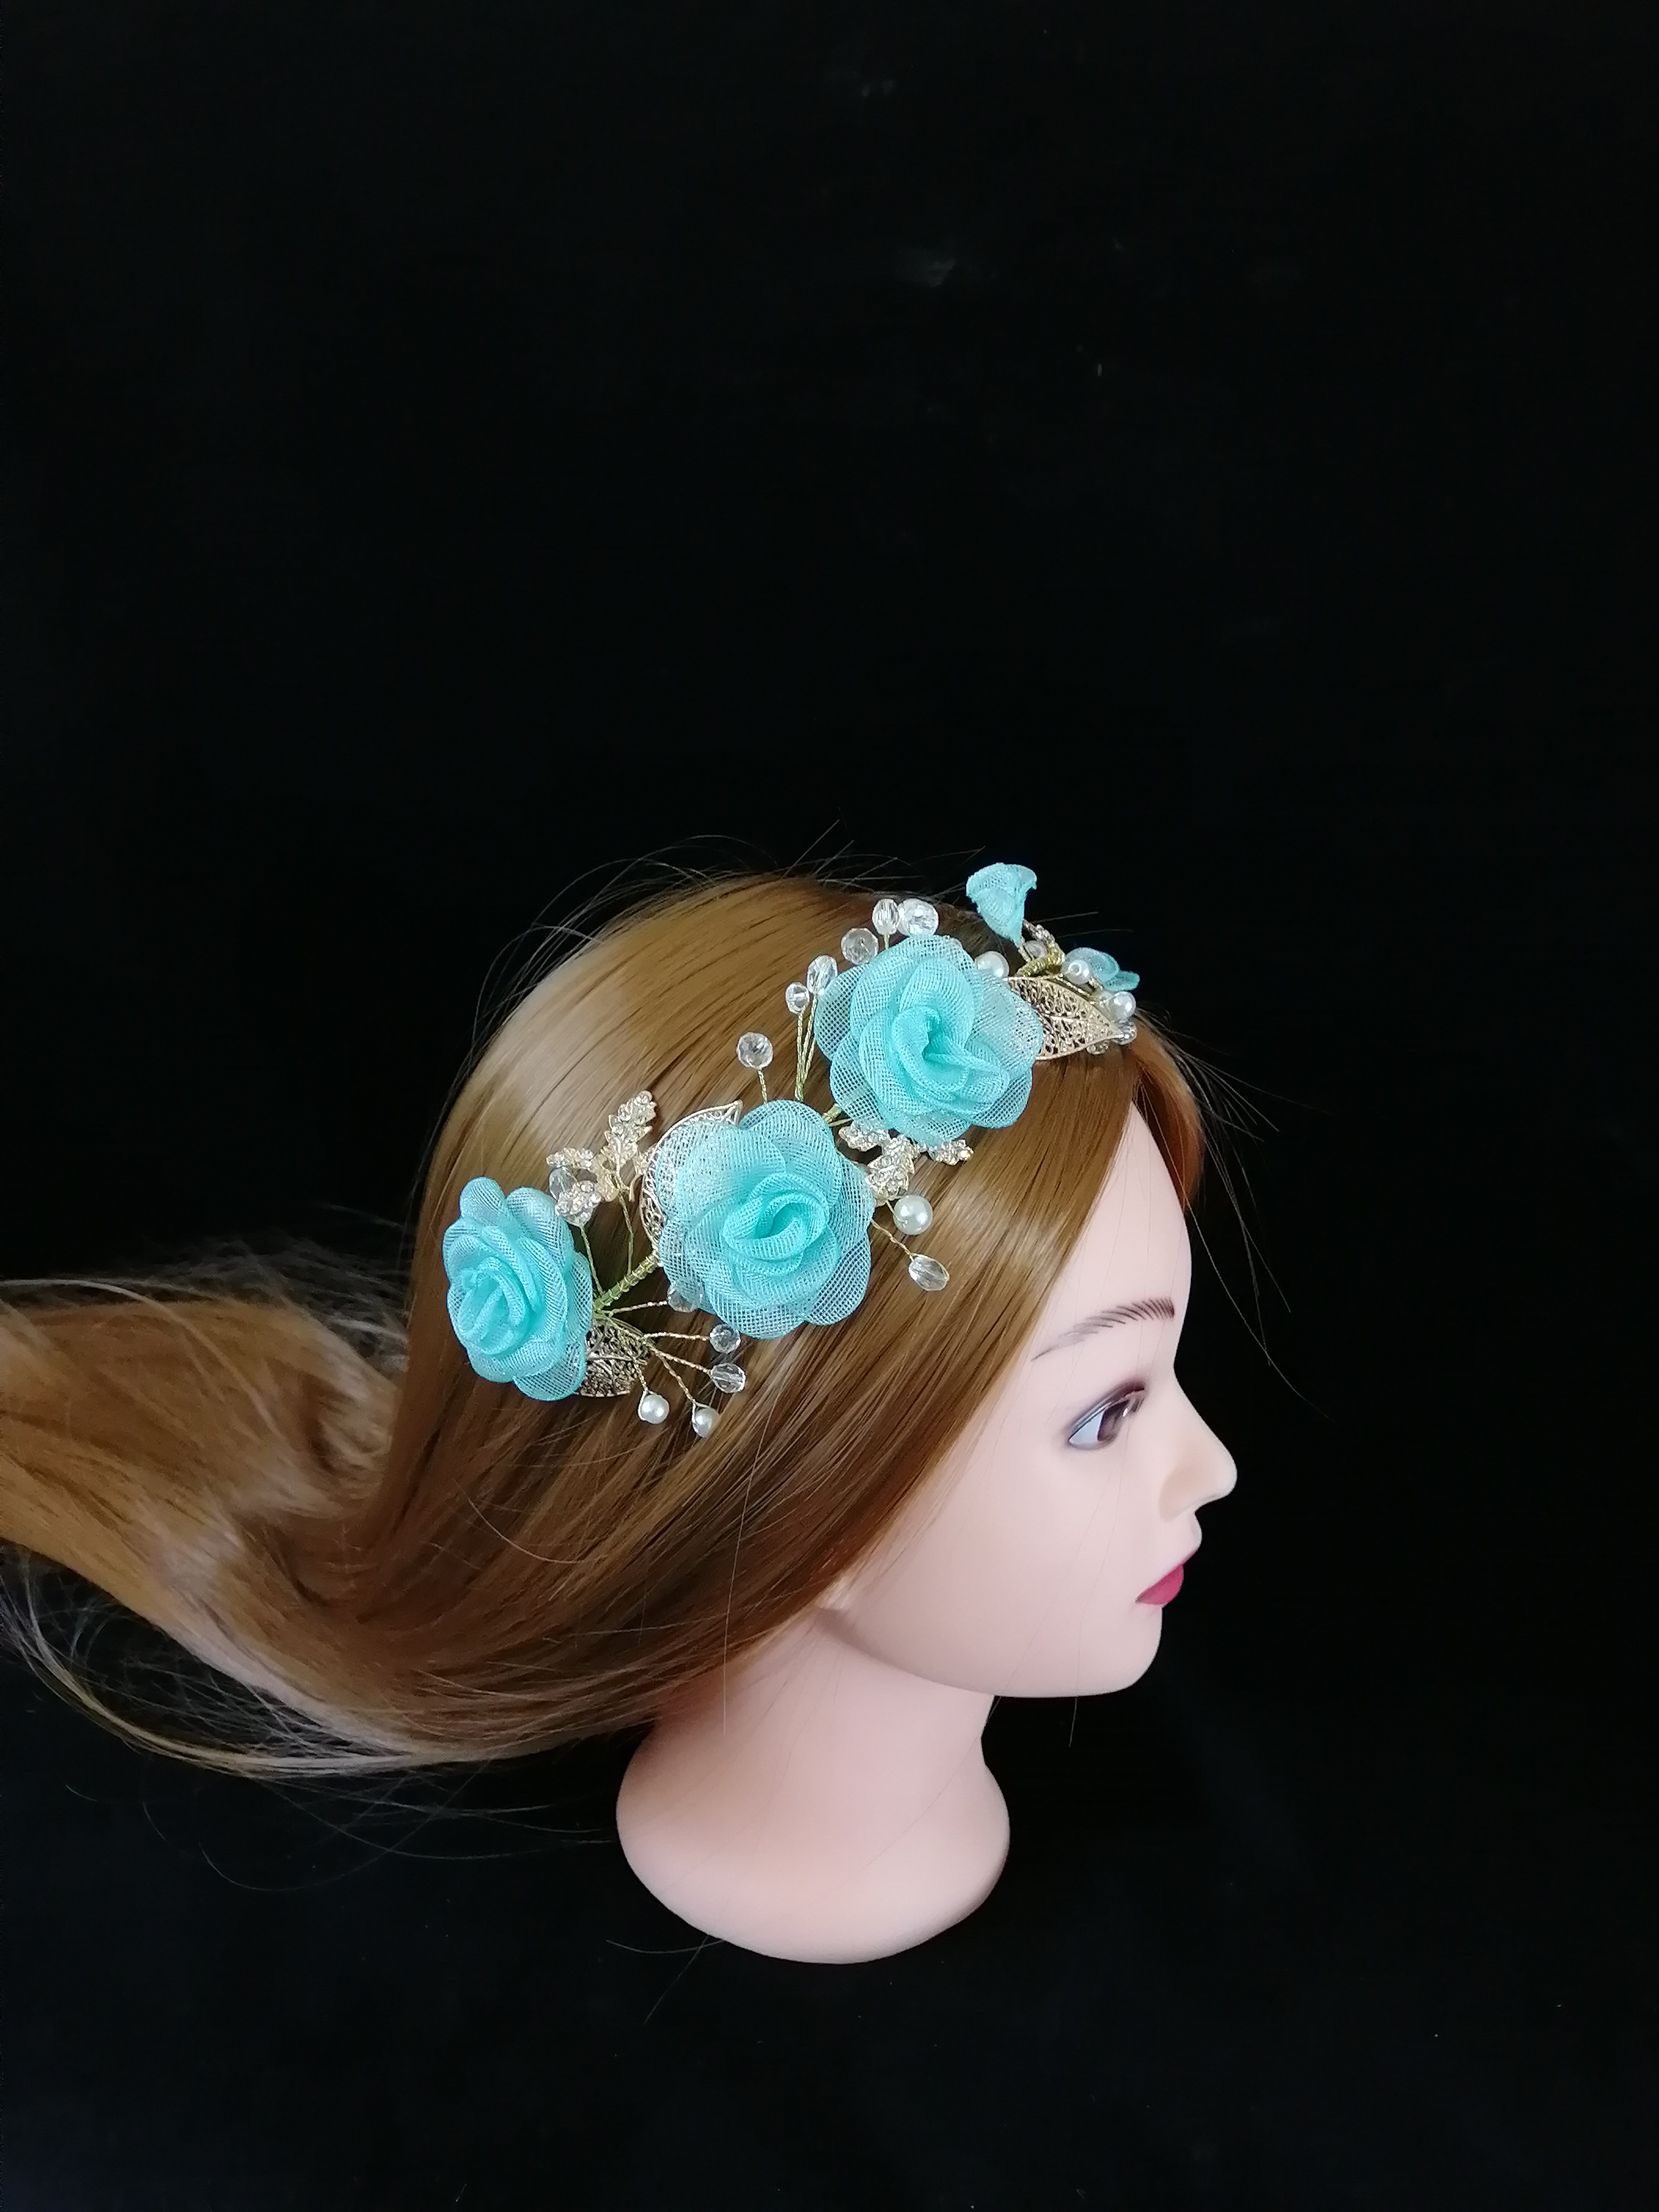 Hot Korean Luxury Sparkly Lake Blue 3D FLoral Hairband Bridal Wedding Rhinestone Tiara For Women Hair Comb Accessories Jewelry